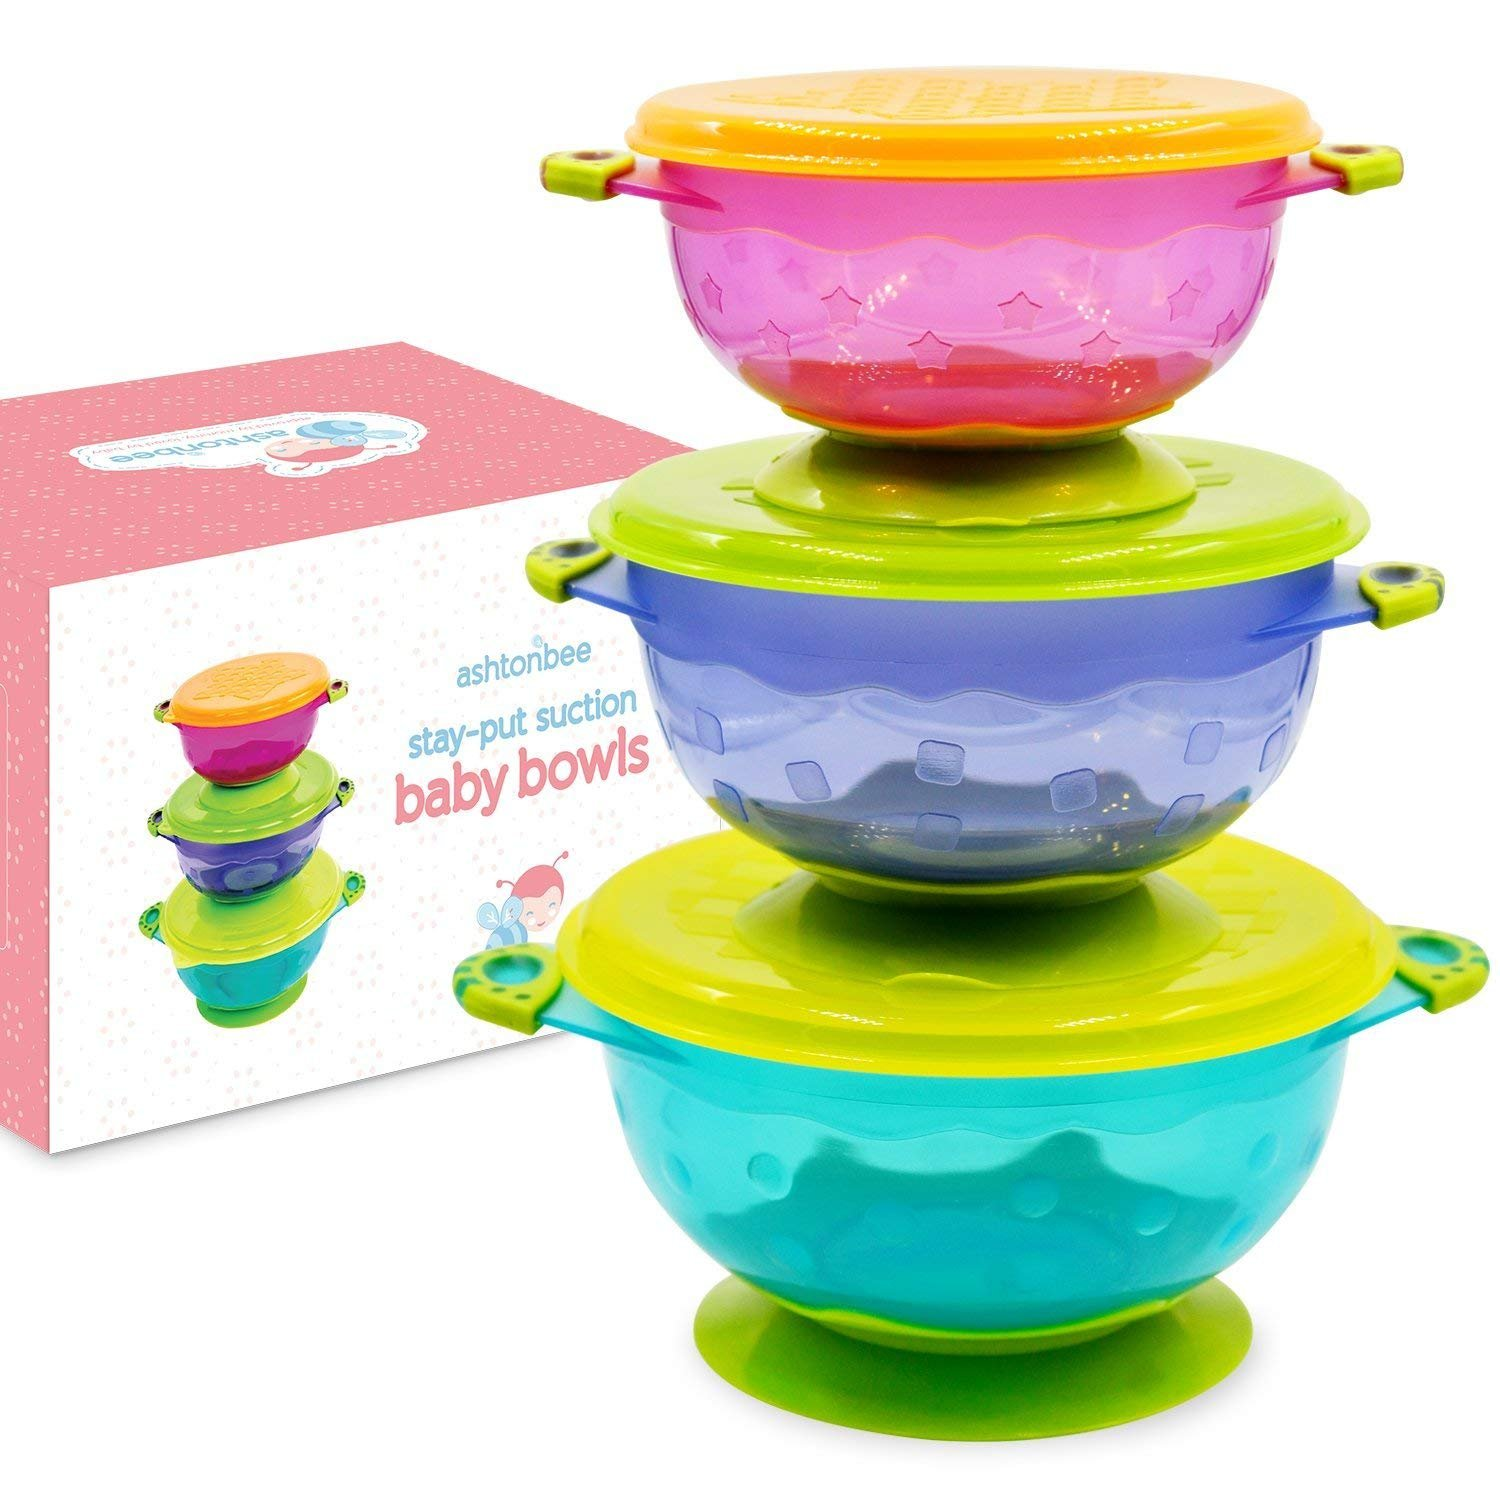 Baby Bowls with Suction - Suction Bowl for Toddlers, Set of 3 Stackable Feeding Bowls with Lids by Ashtonbee